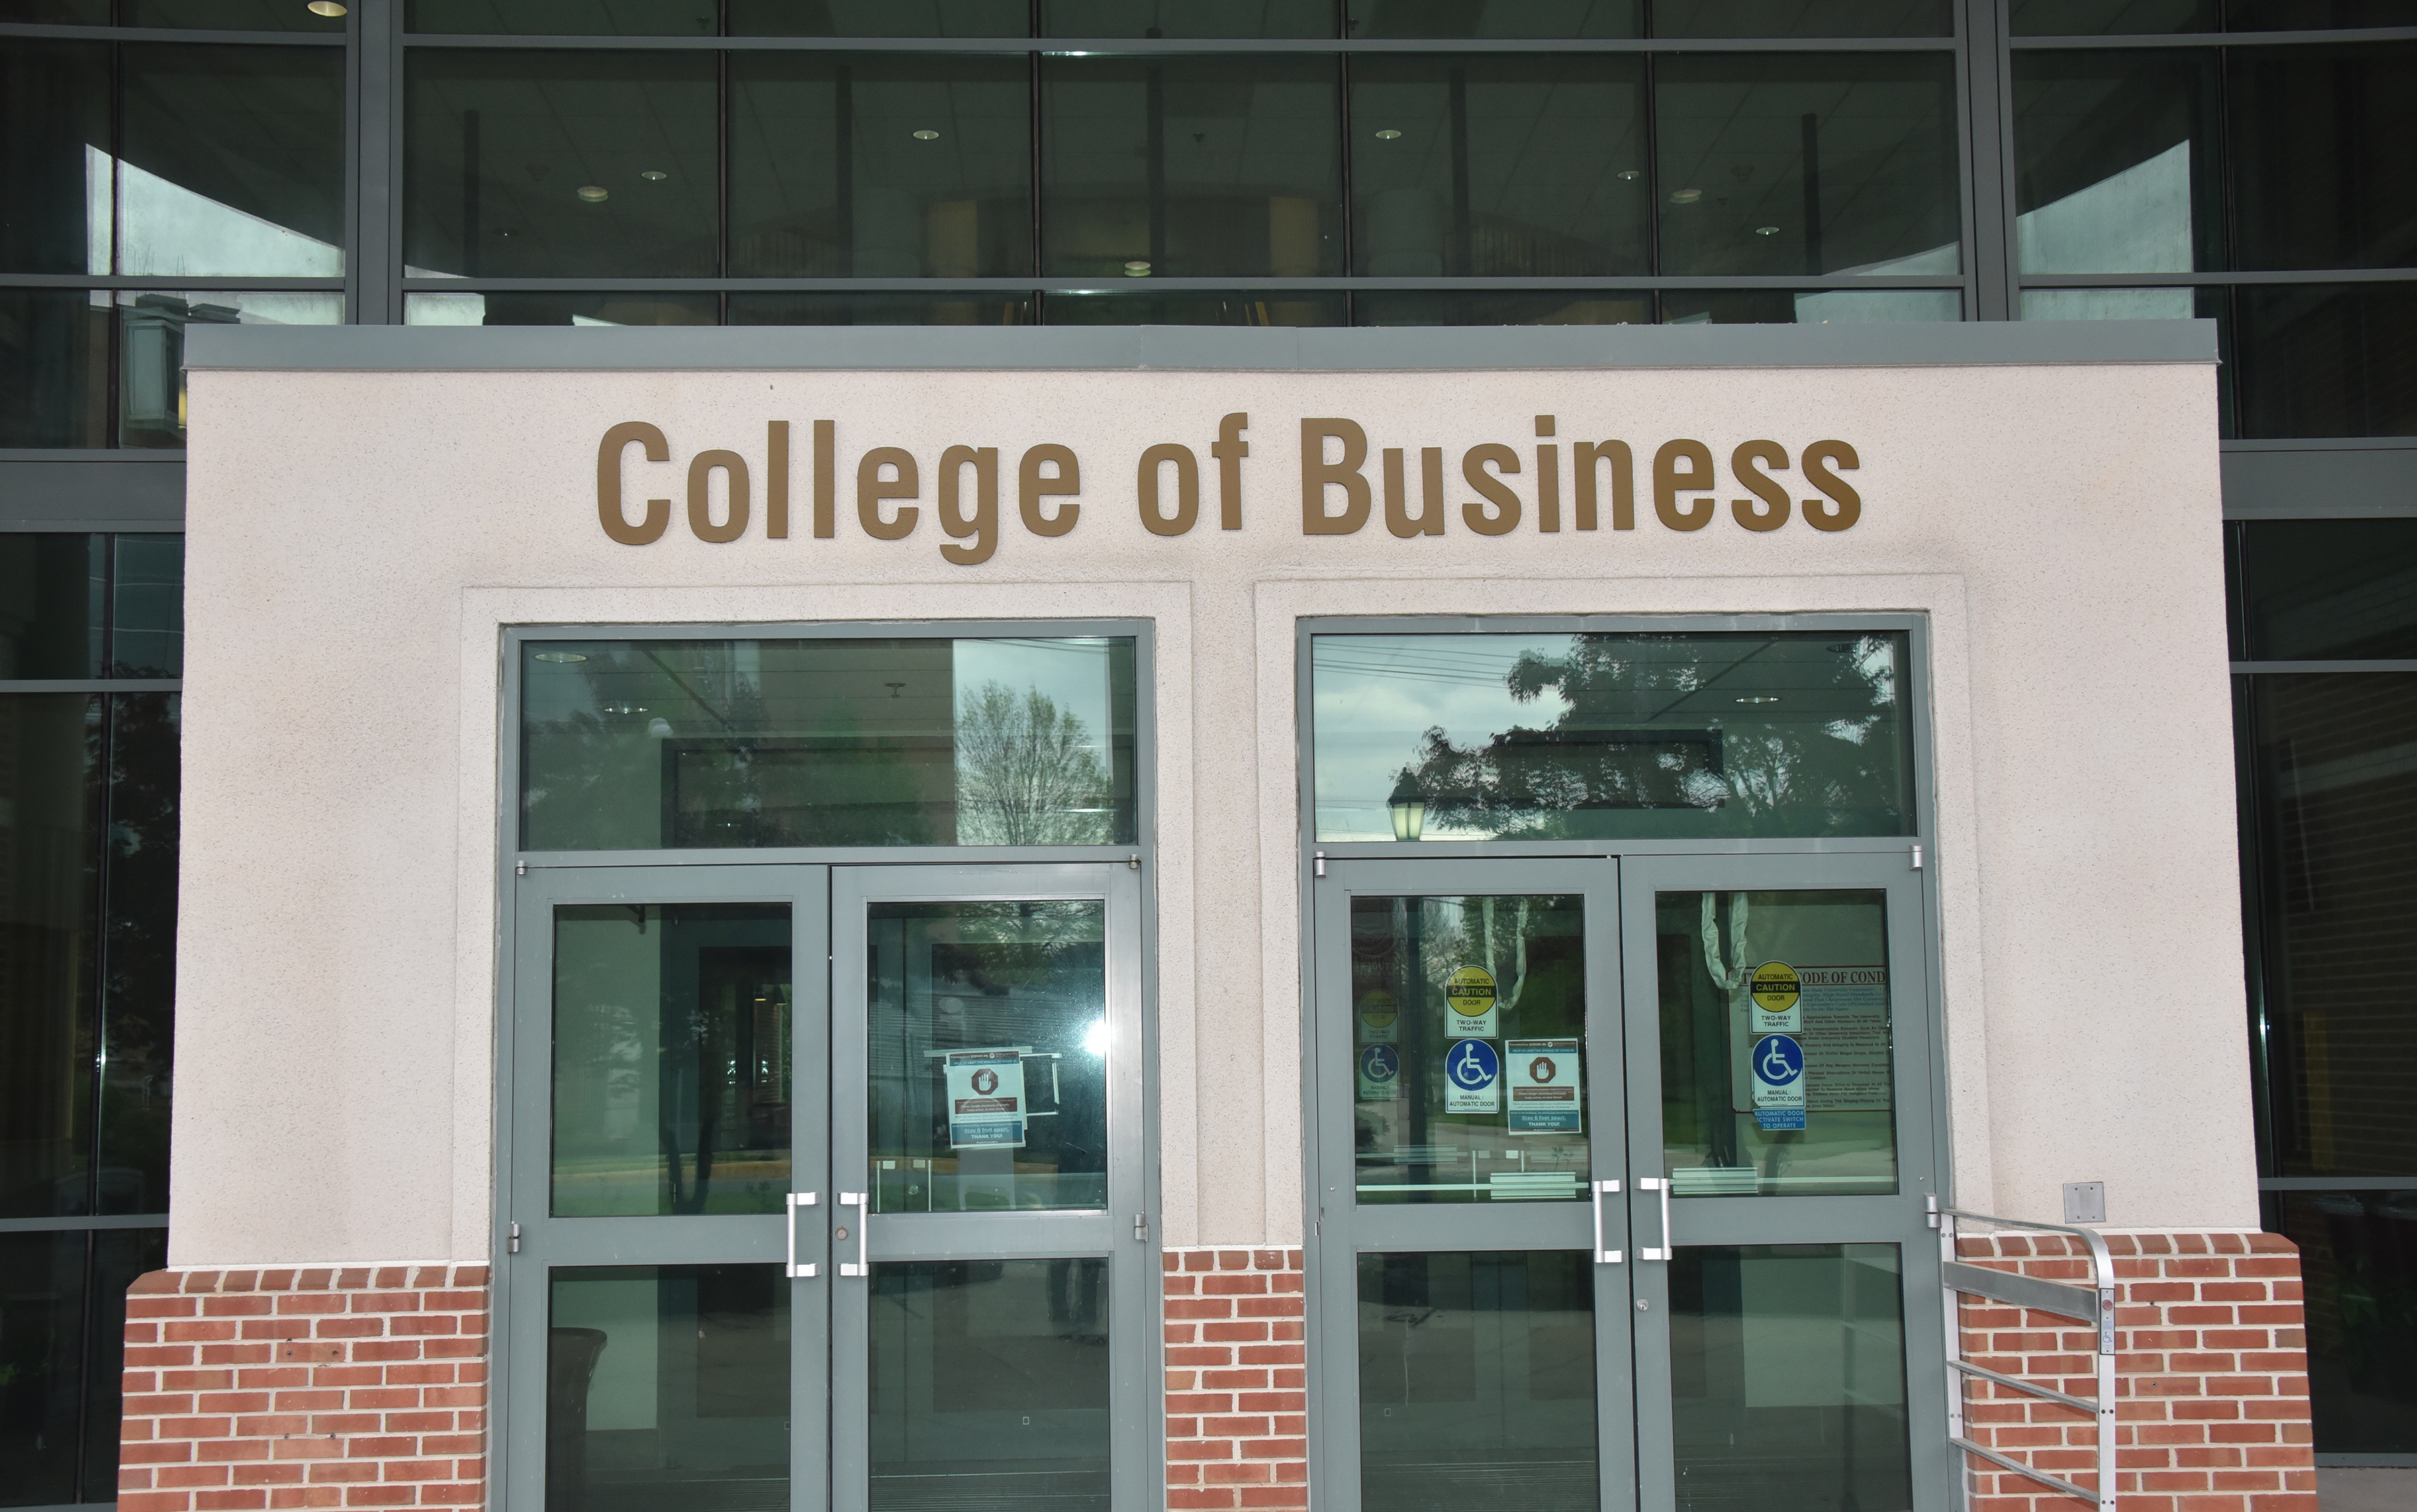 The College of Business' Human Resource Management Program recently received certification by the Society of Human Resource Management, affirming that the Management concentration meets the international standard for the discipline.